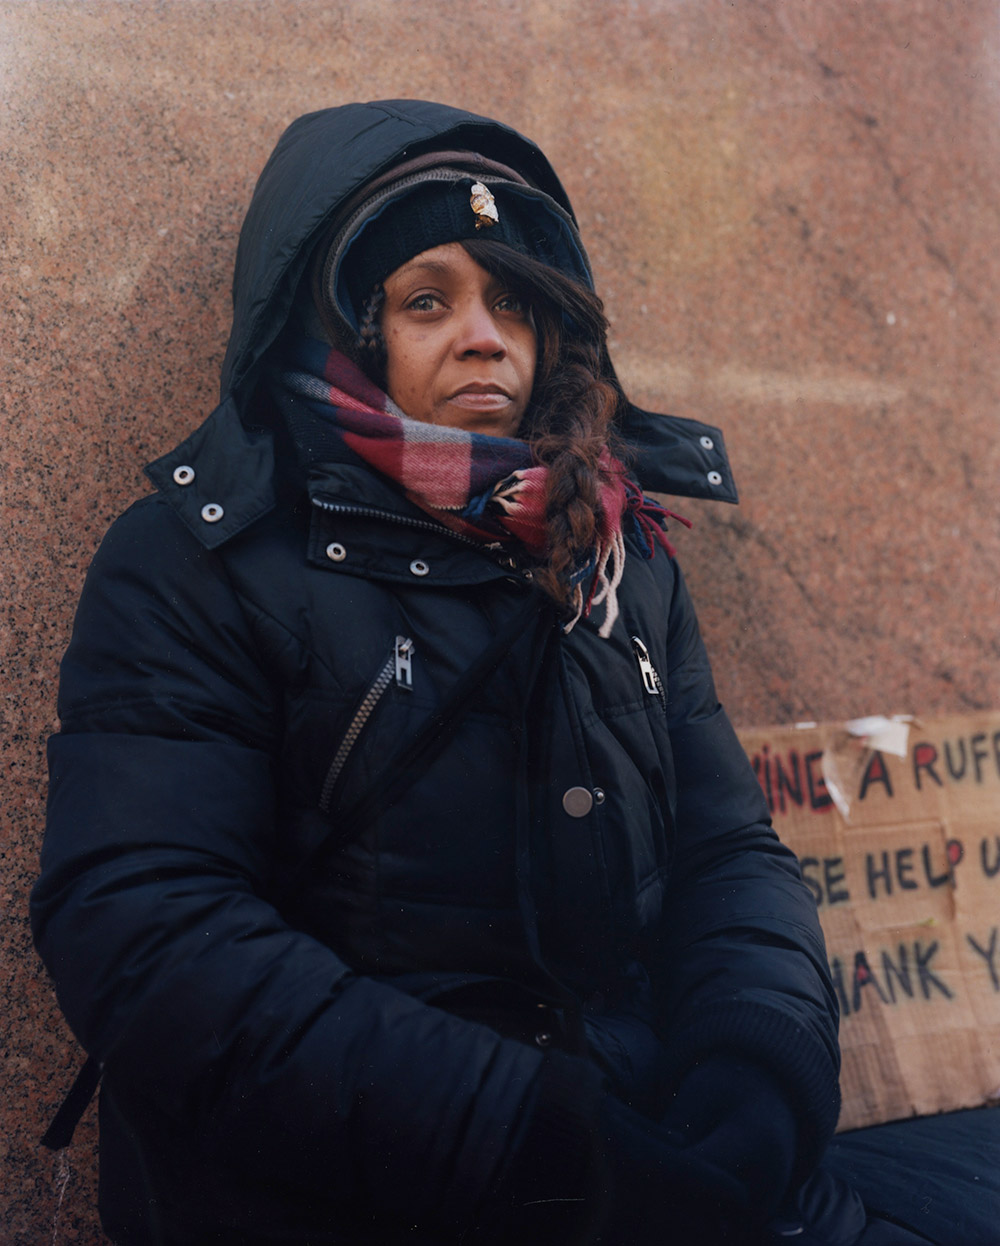 Charise M. Paschall, from Andres Serrano's Residents of New York project